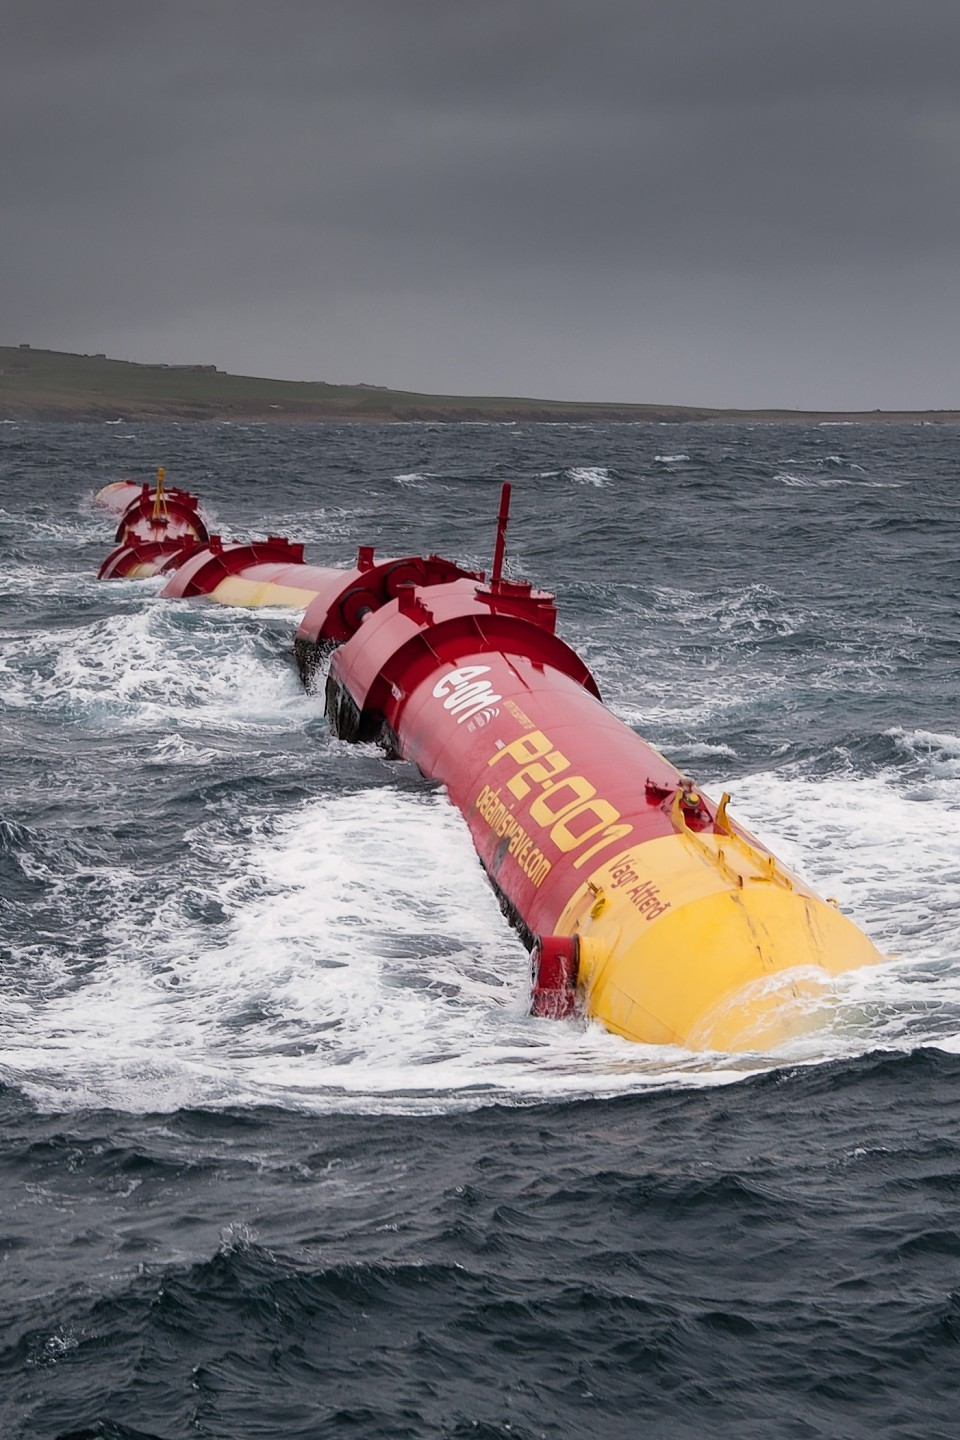 The body set up to help develop wave energy technology is to get £14.3million over next 13 months.